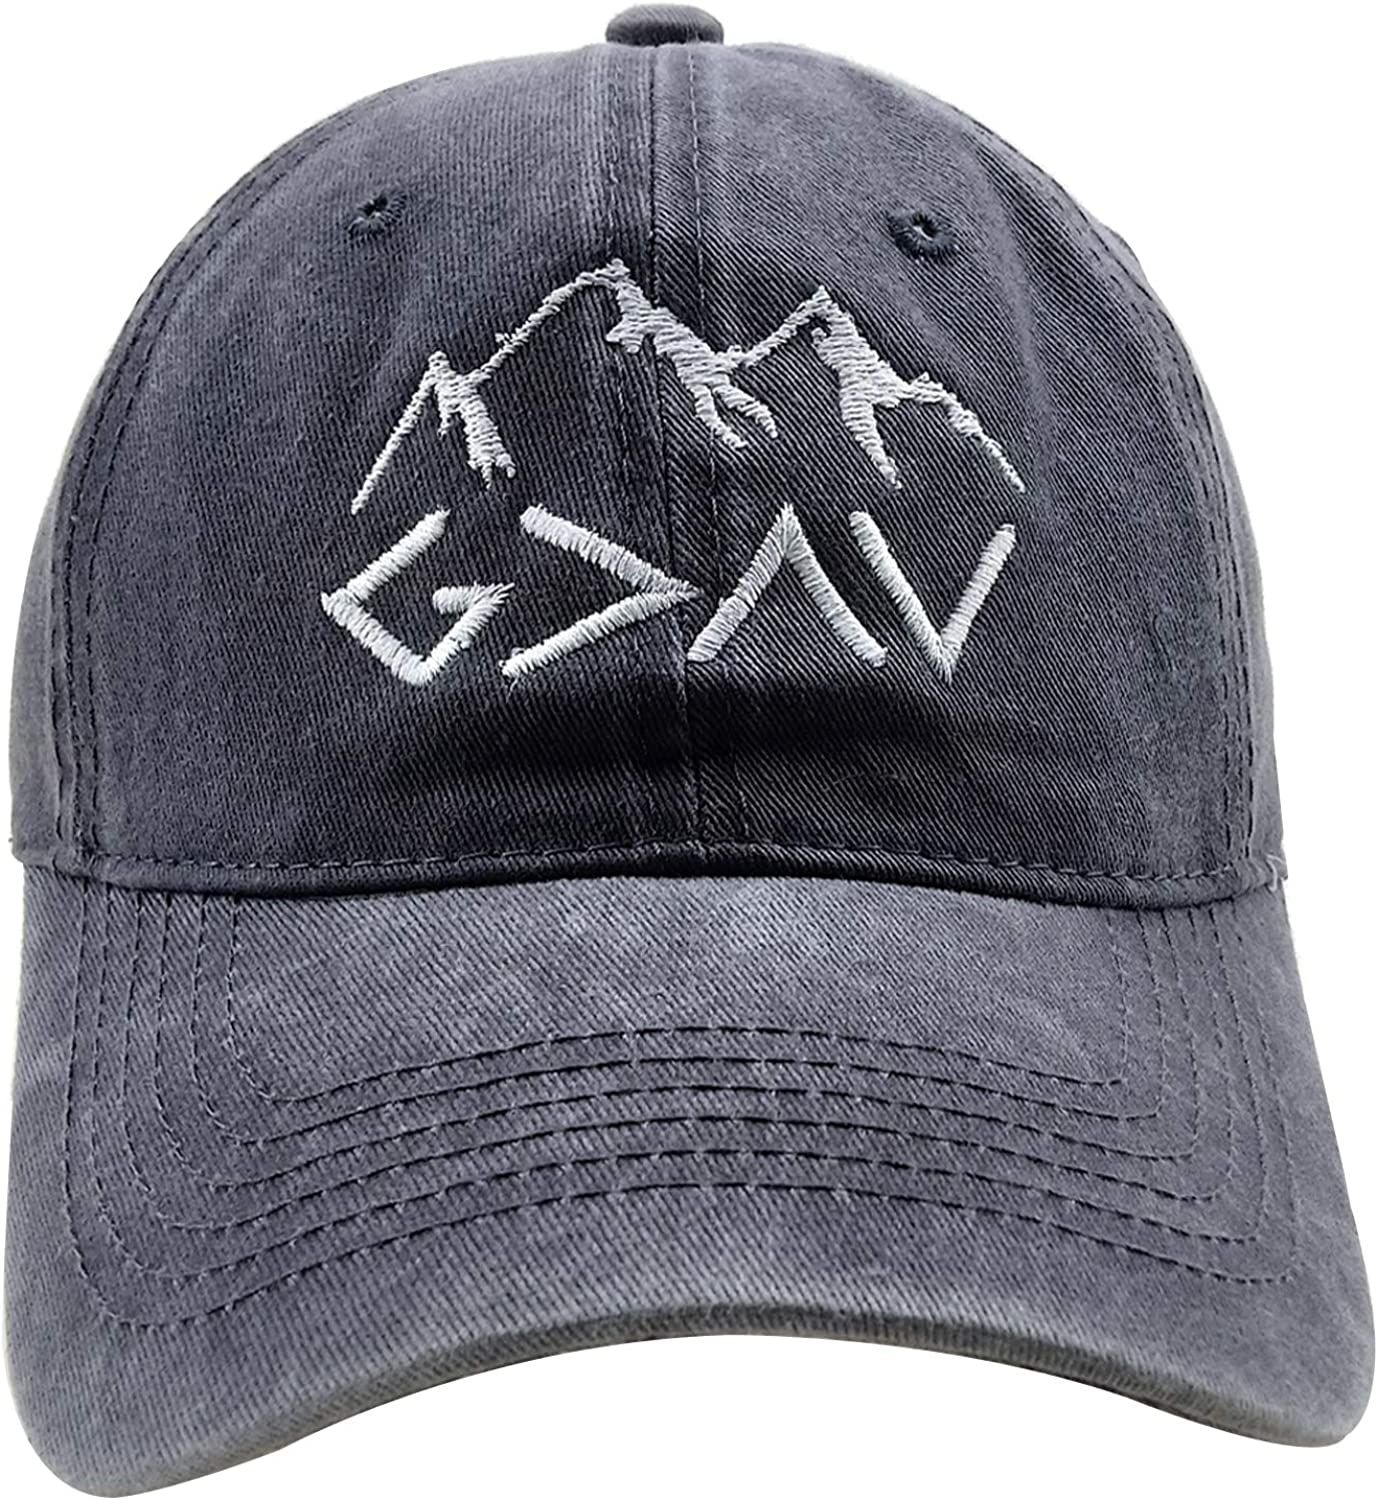 wiuhauhjj Shipping included Embroidered Baseball Cap Denim Hat Men Tampa Mall Women for Adjus